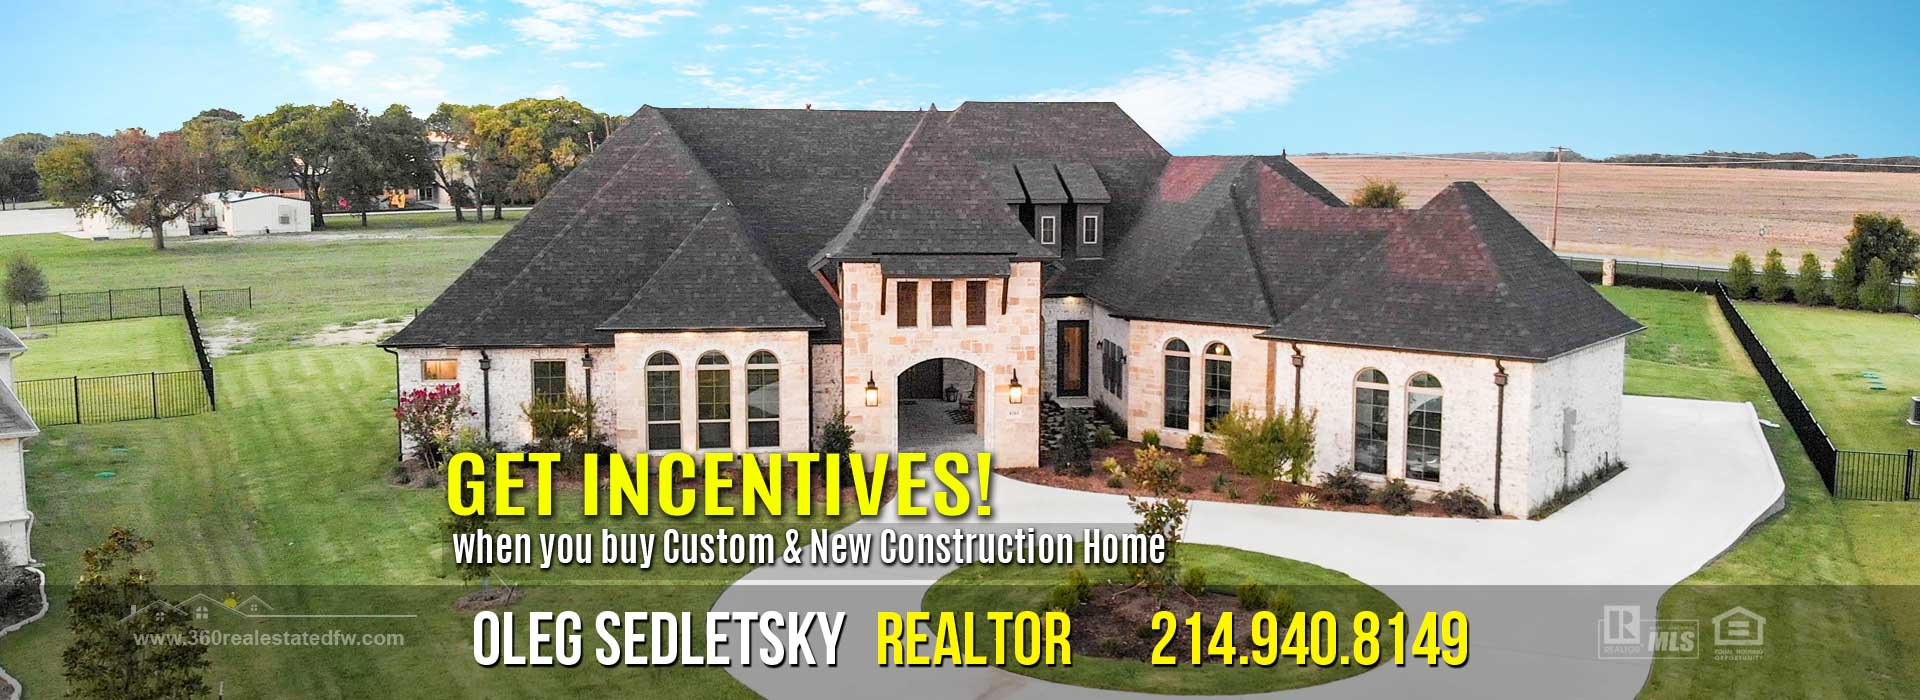 Dallas-Fort Worth Realtor - 214.940.8149 - Get Incentives when you buy New Construction Home in the Dallas-Fort Worth area